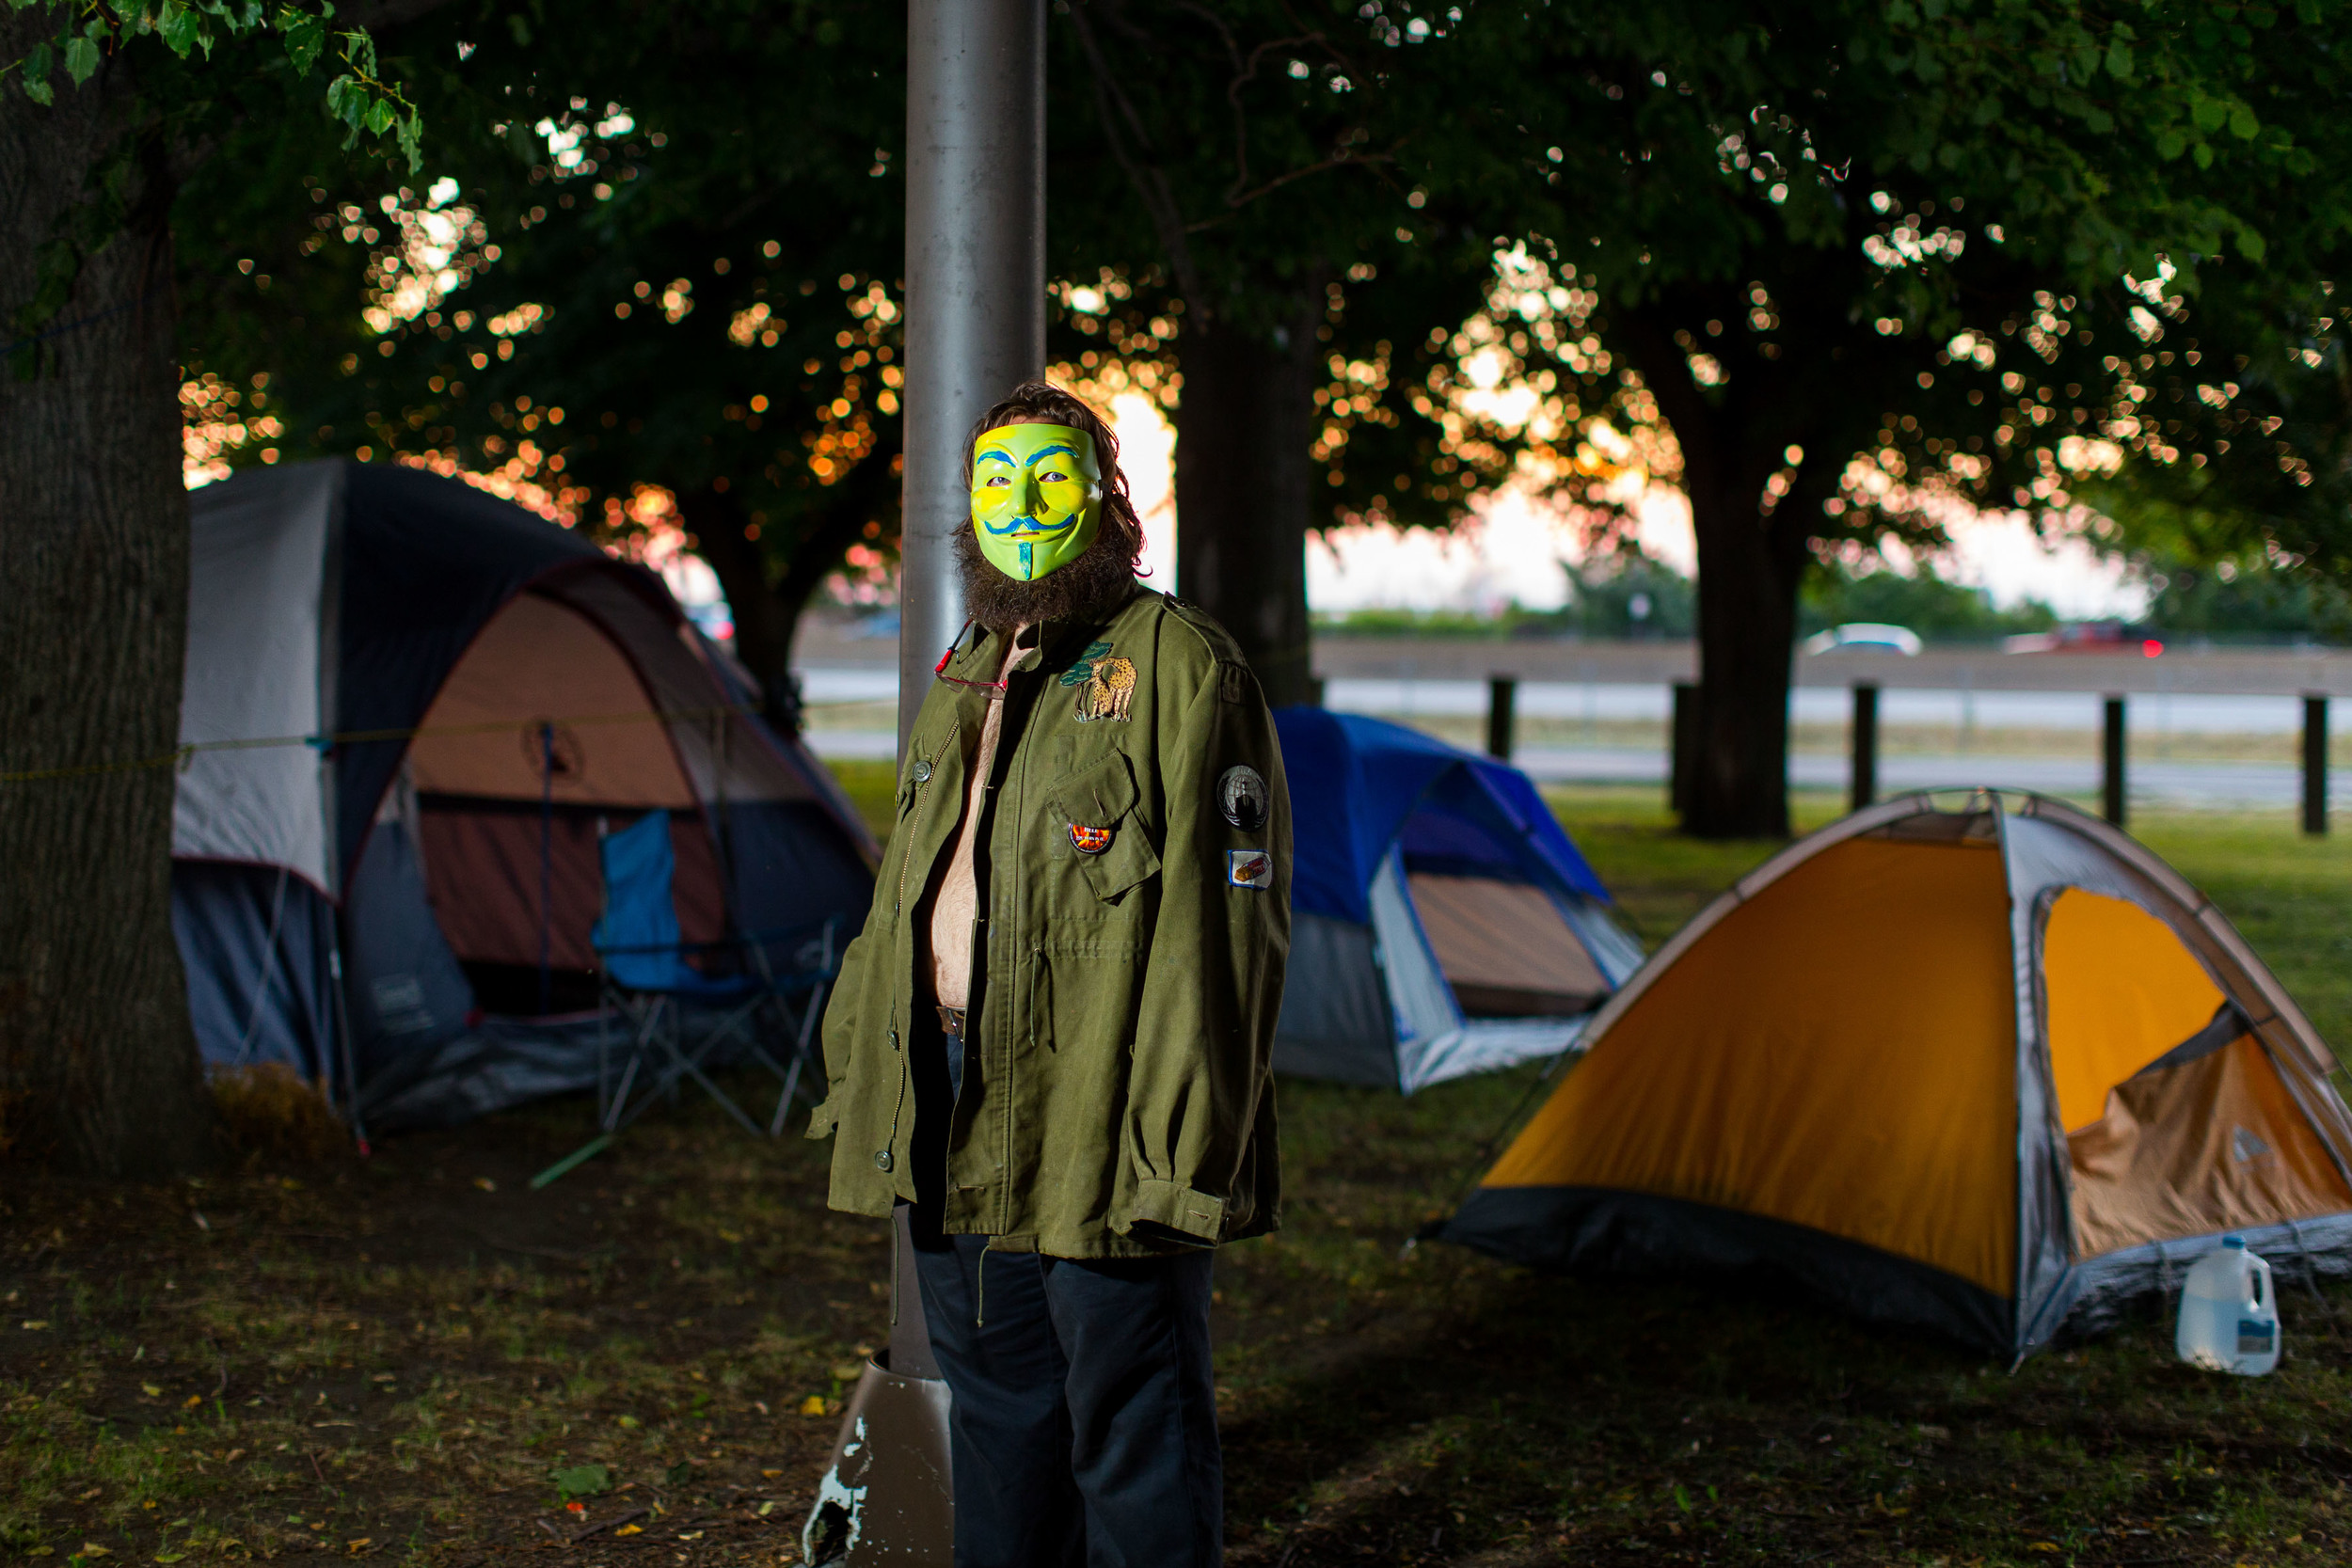 David Guthrie, one of the founders of the Occupy RNC camp.